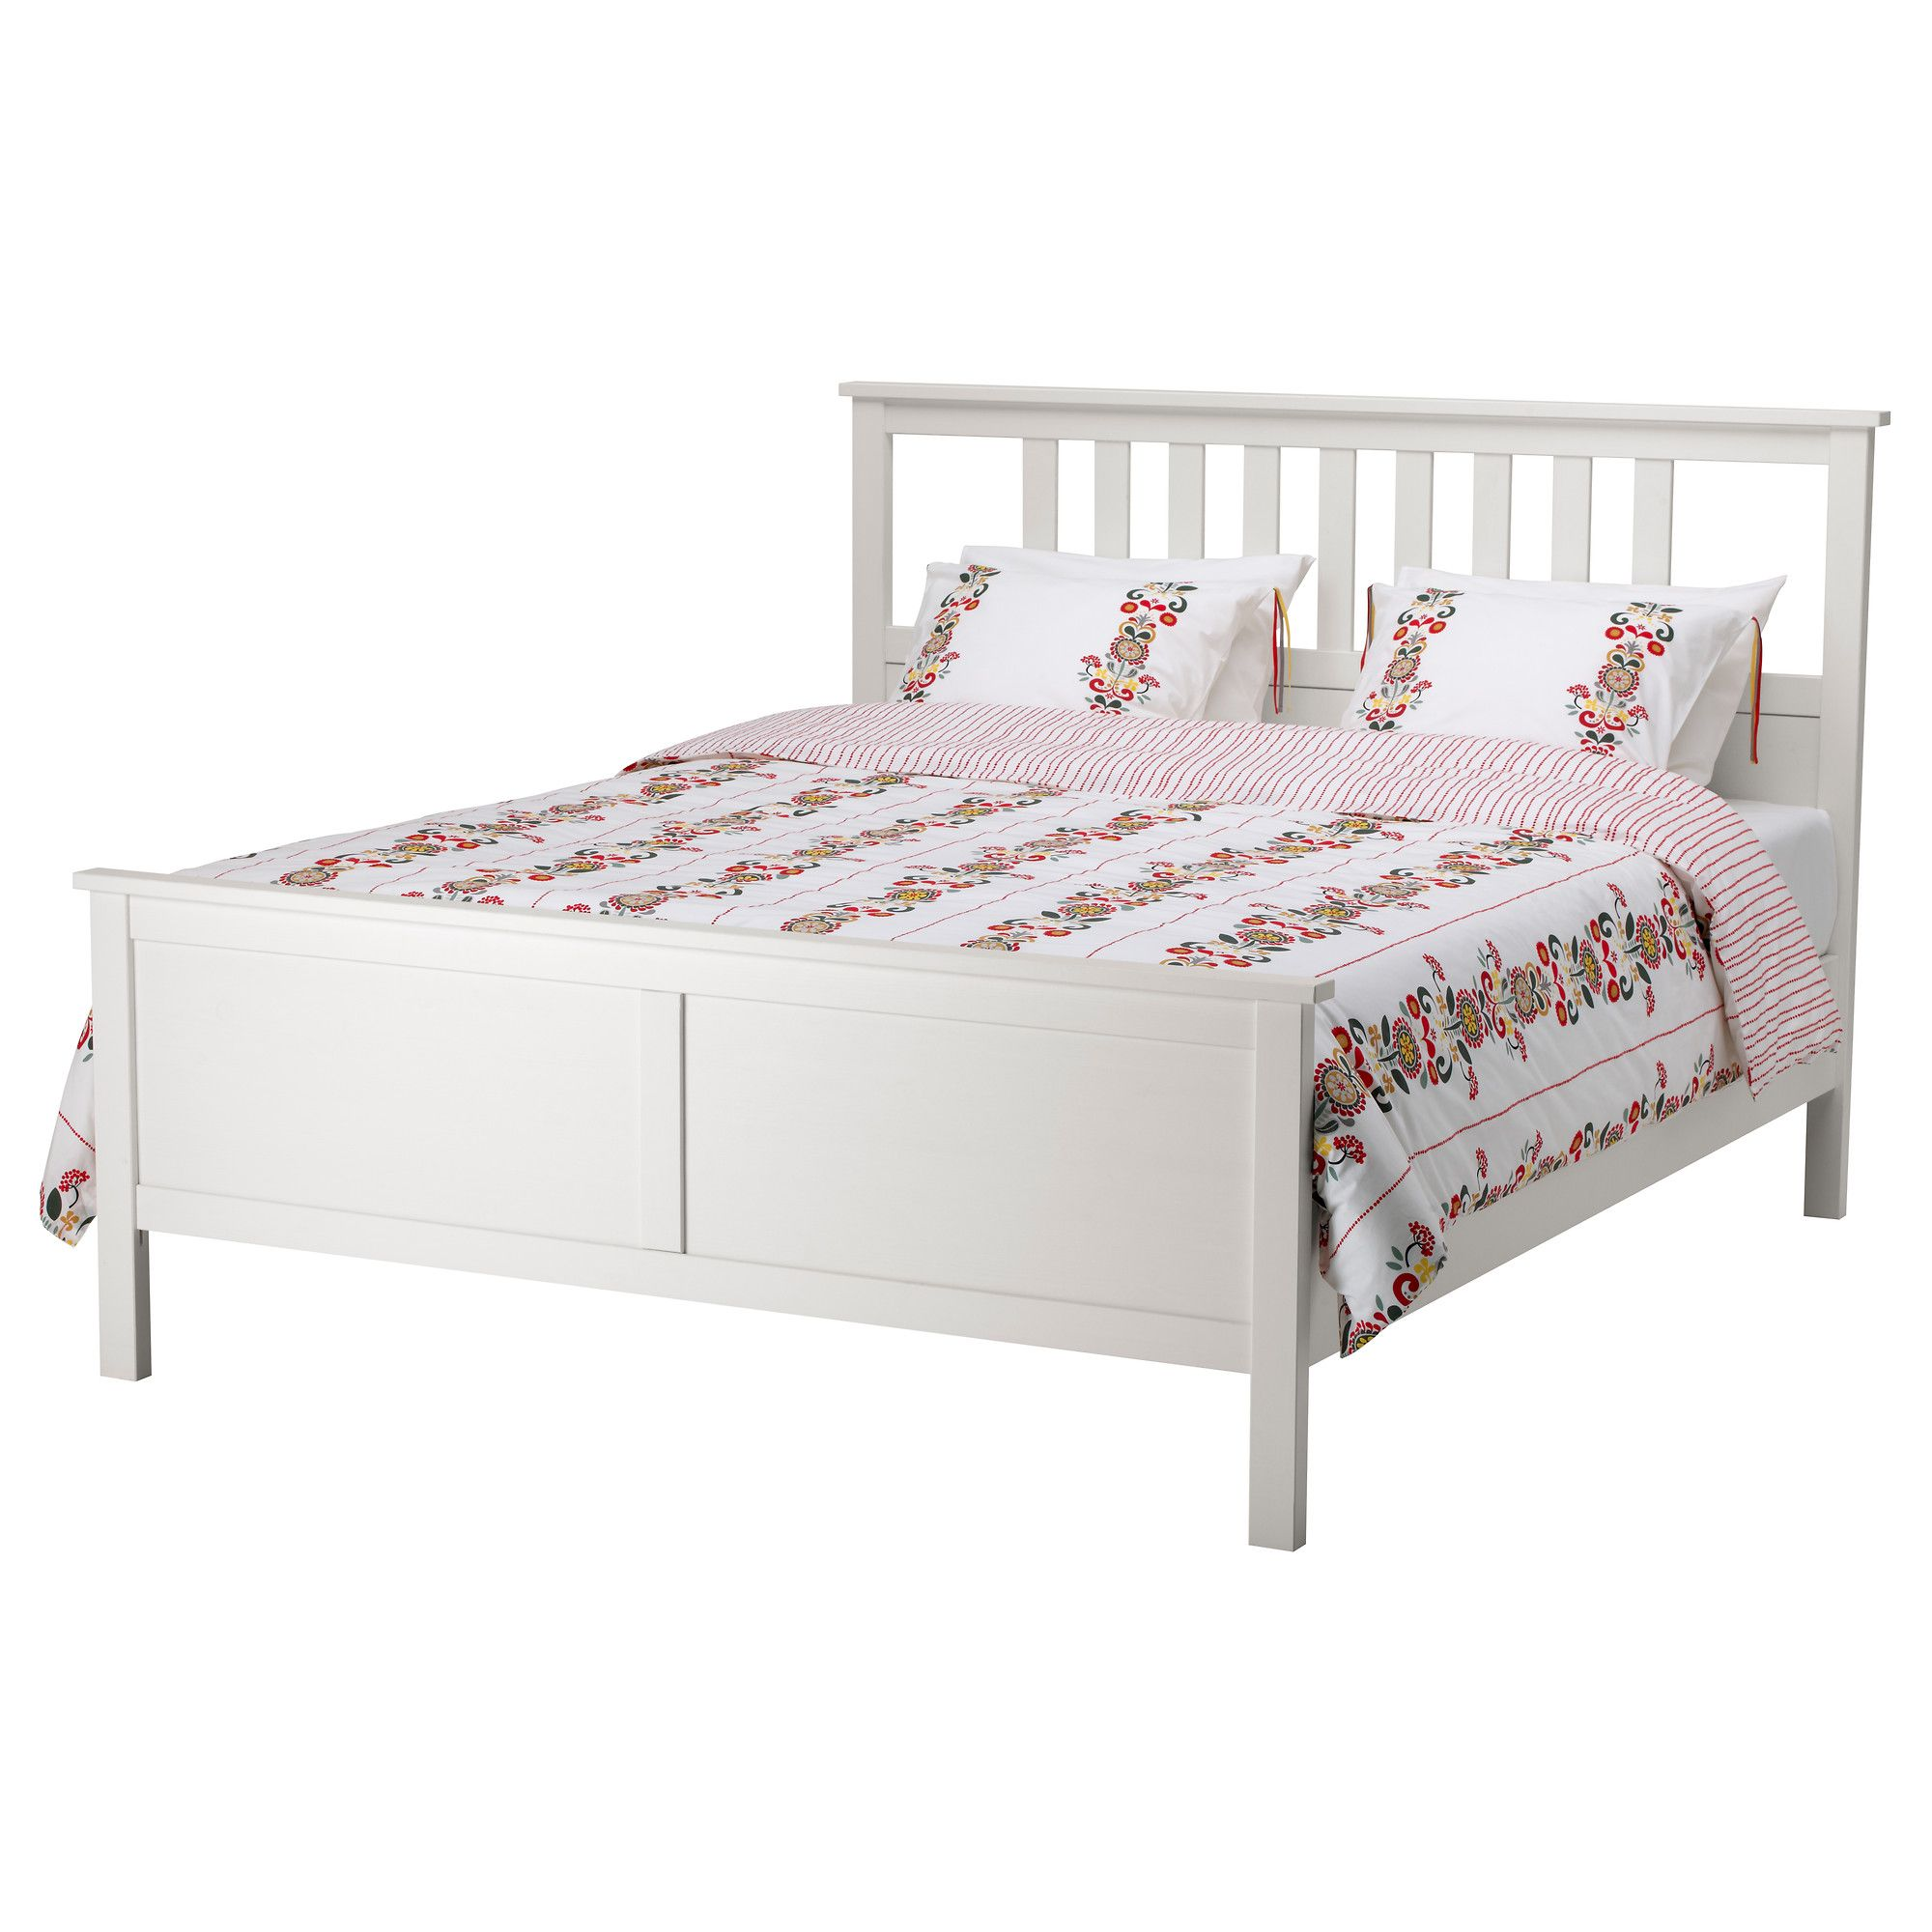 hemnes bed frame white stain lur y 140x200 cm hemnes. Black Bedroom Furniture Sets. Home Design Ideas